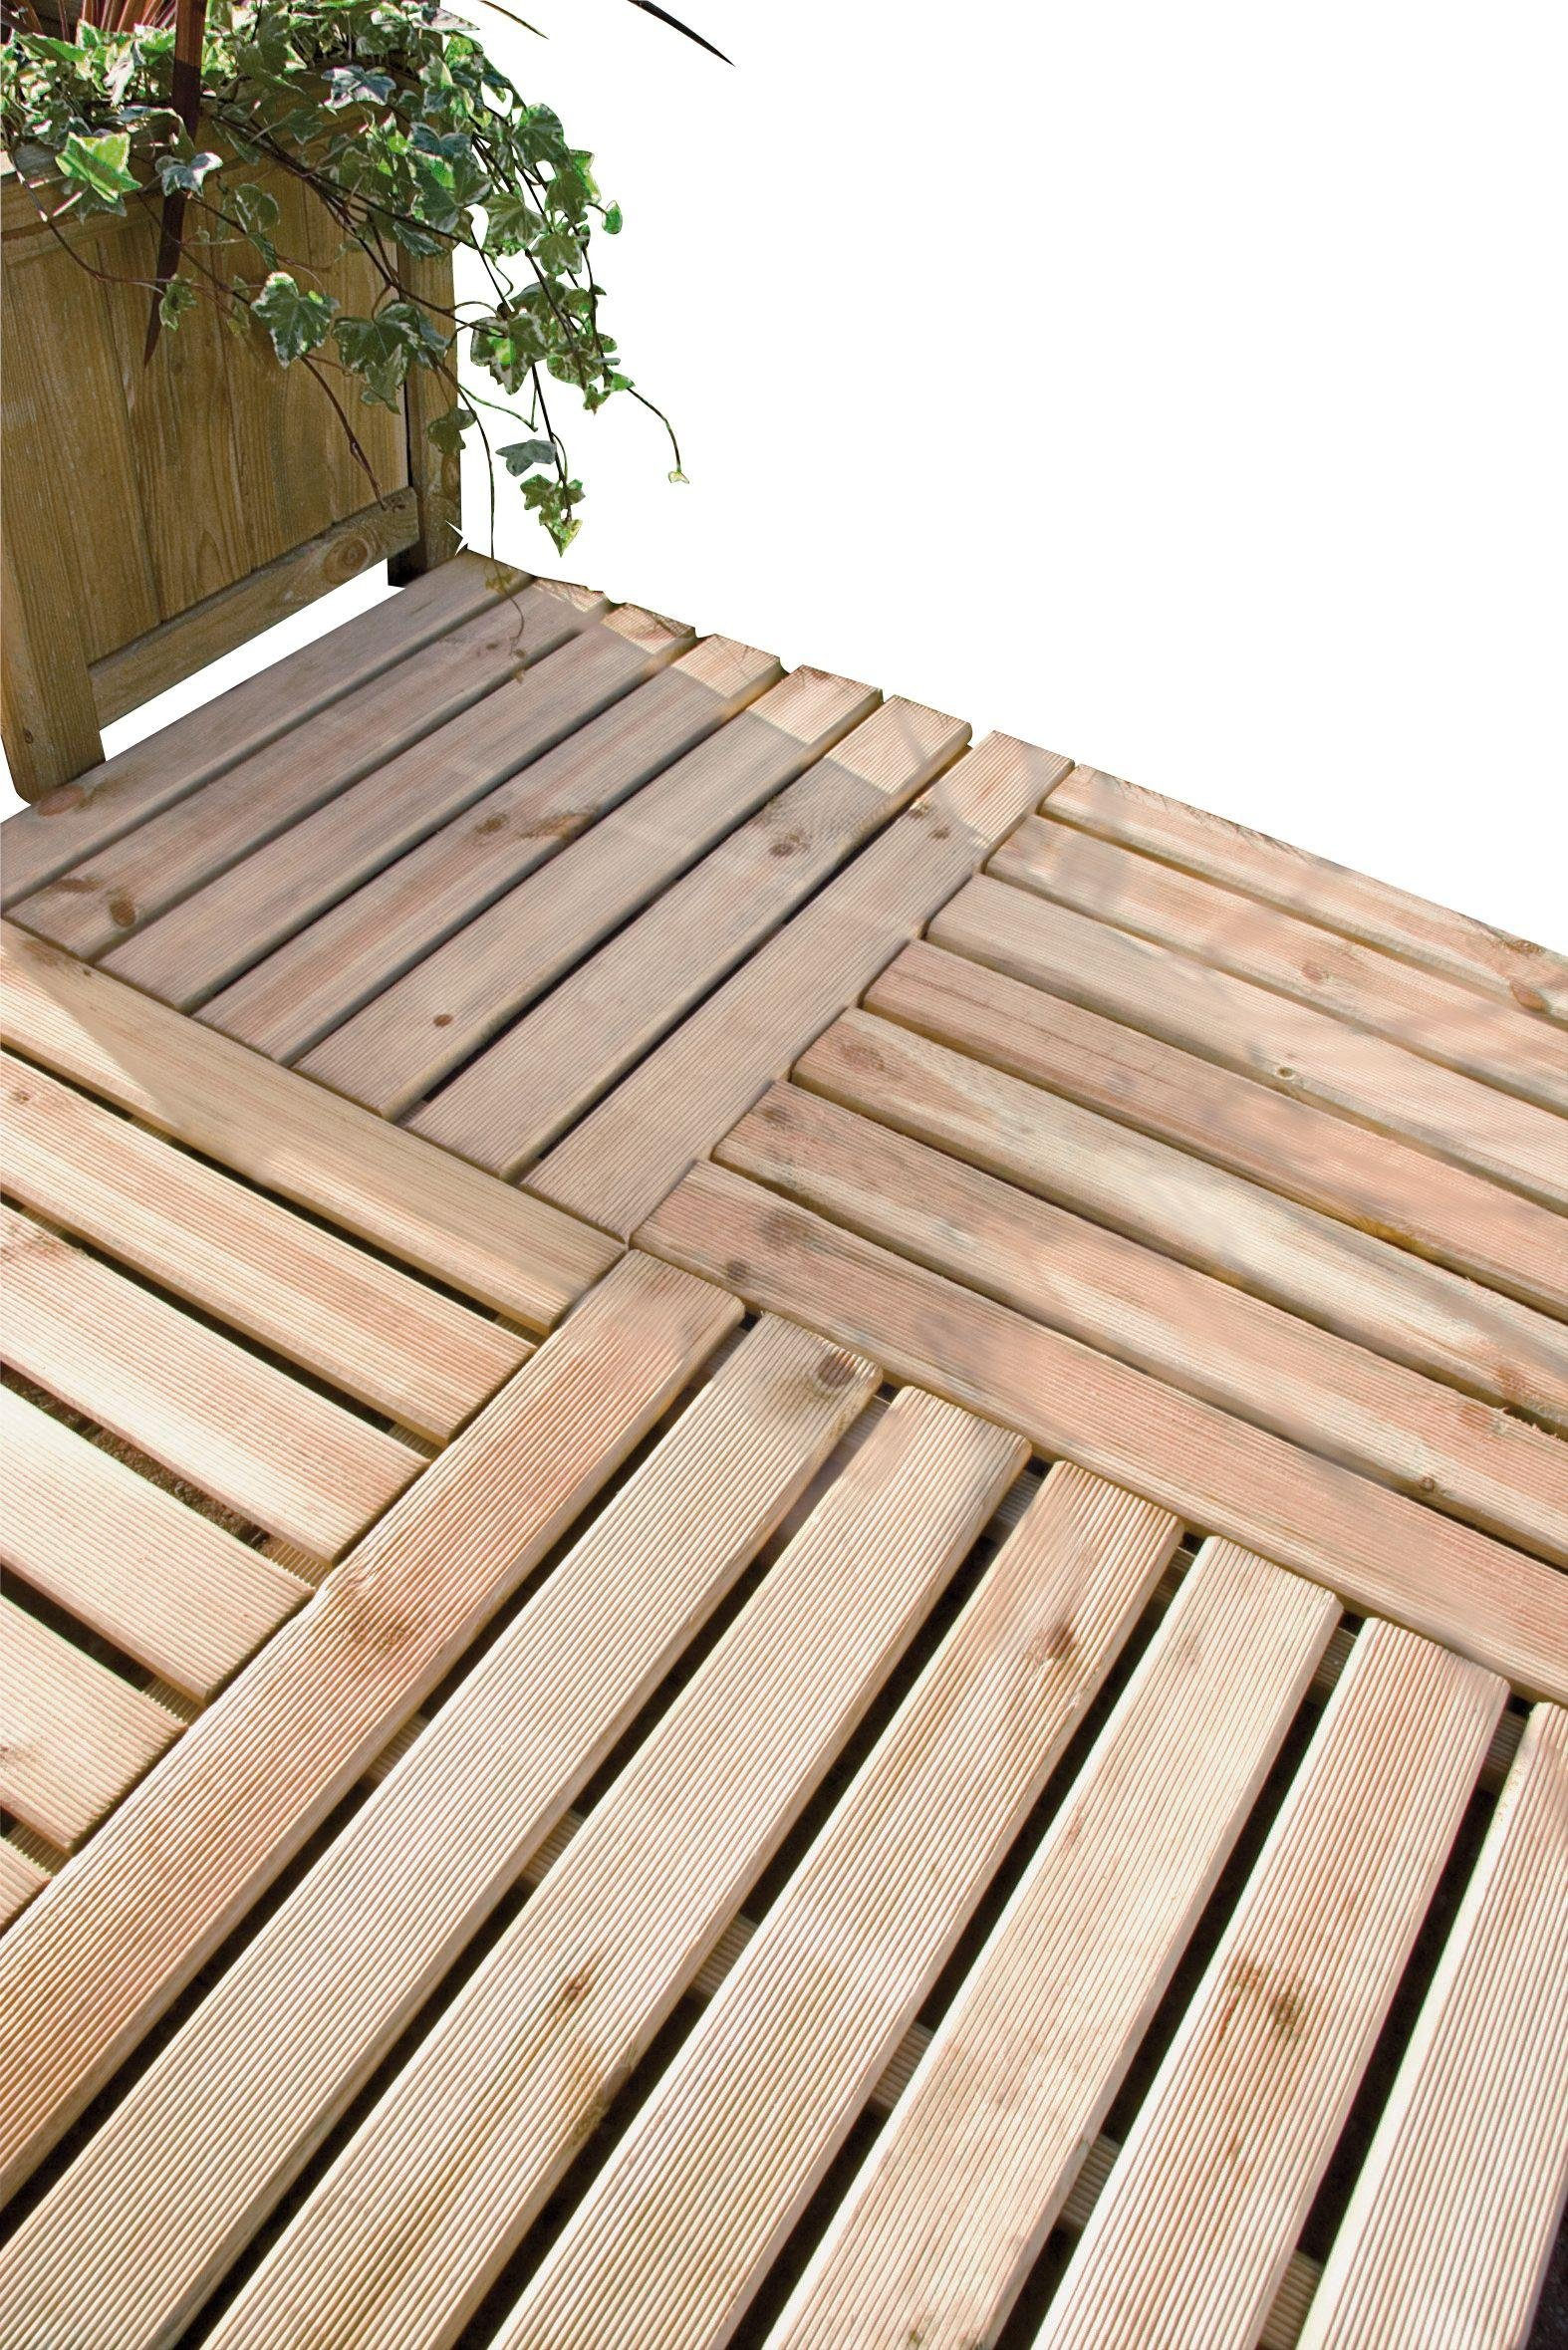 decking tiles pack of